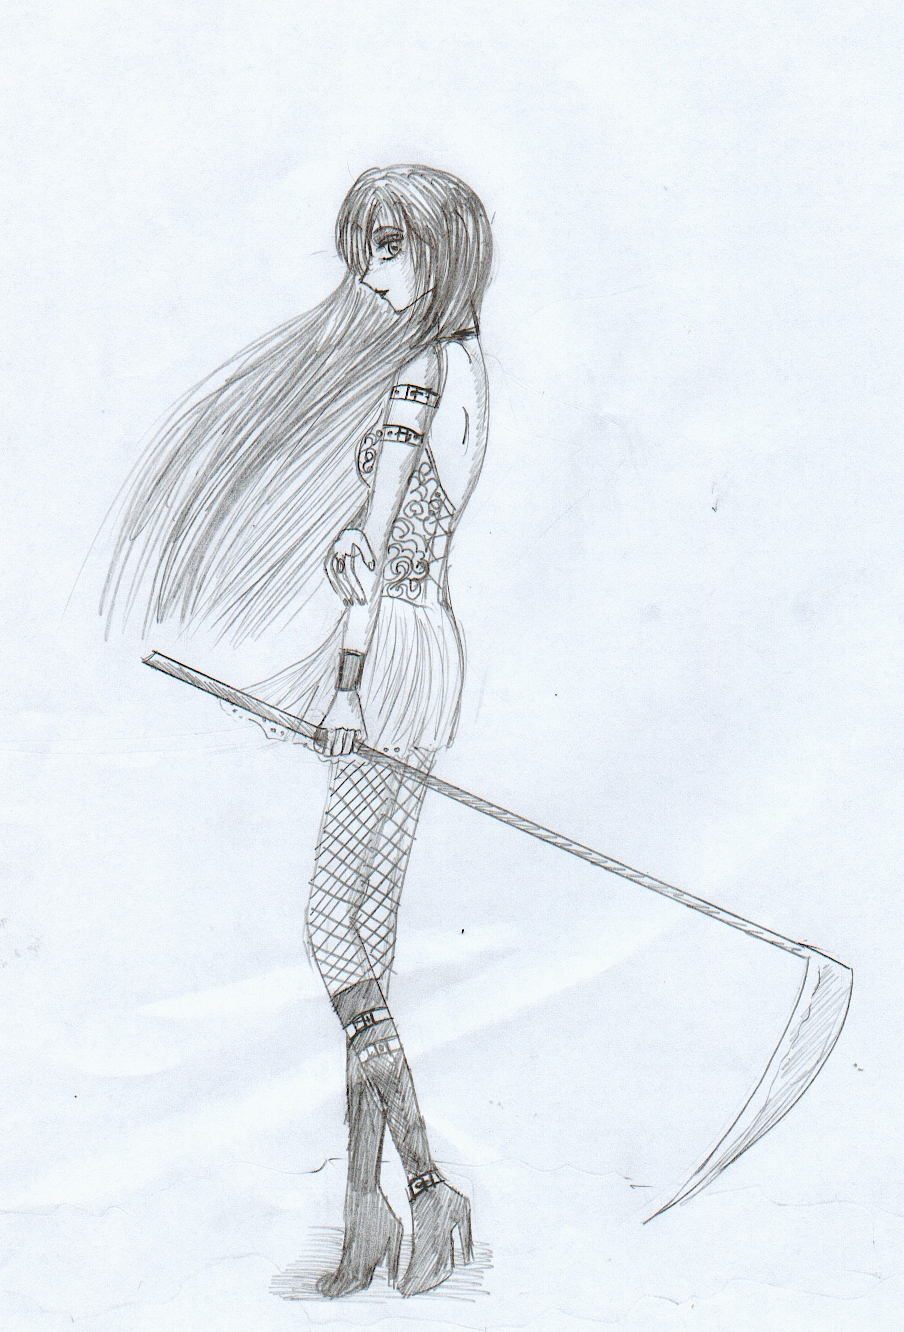 Drawn grim reaper girm Female on by Female by